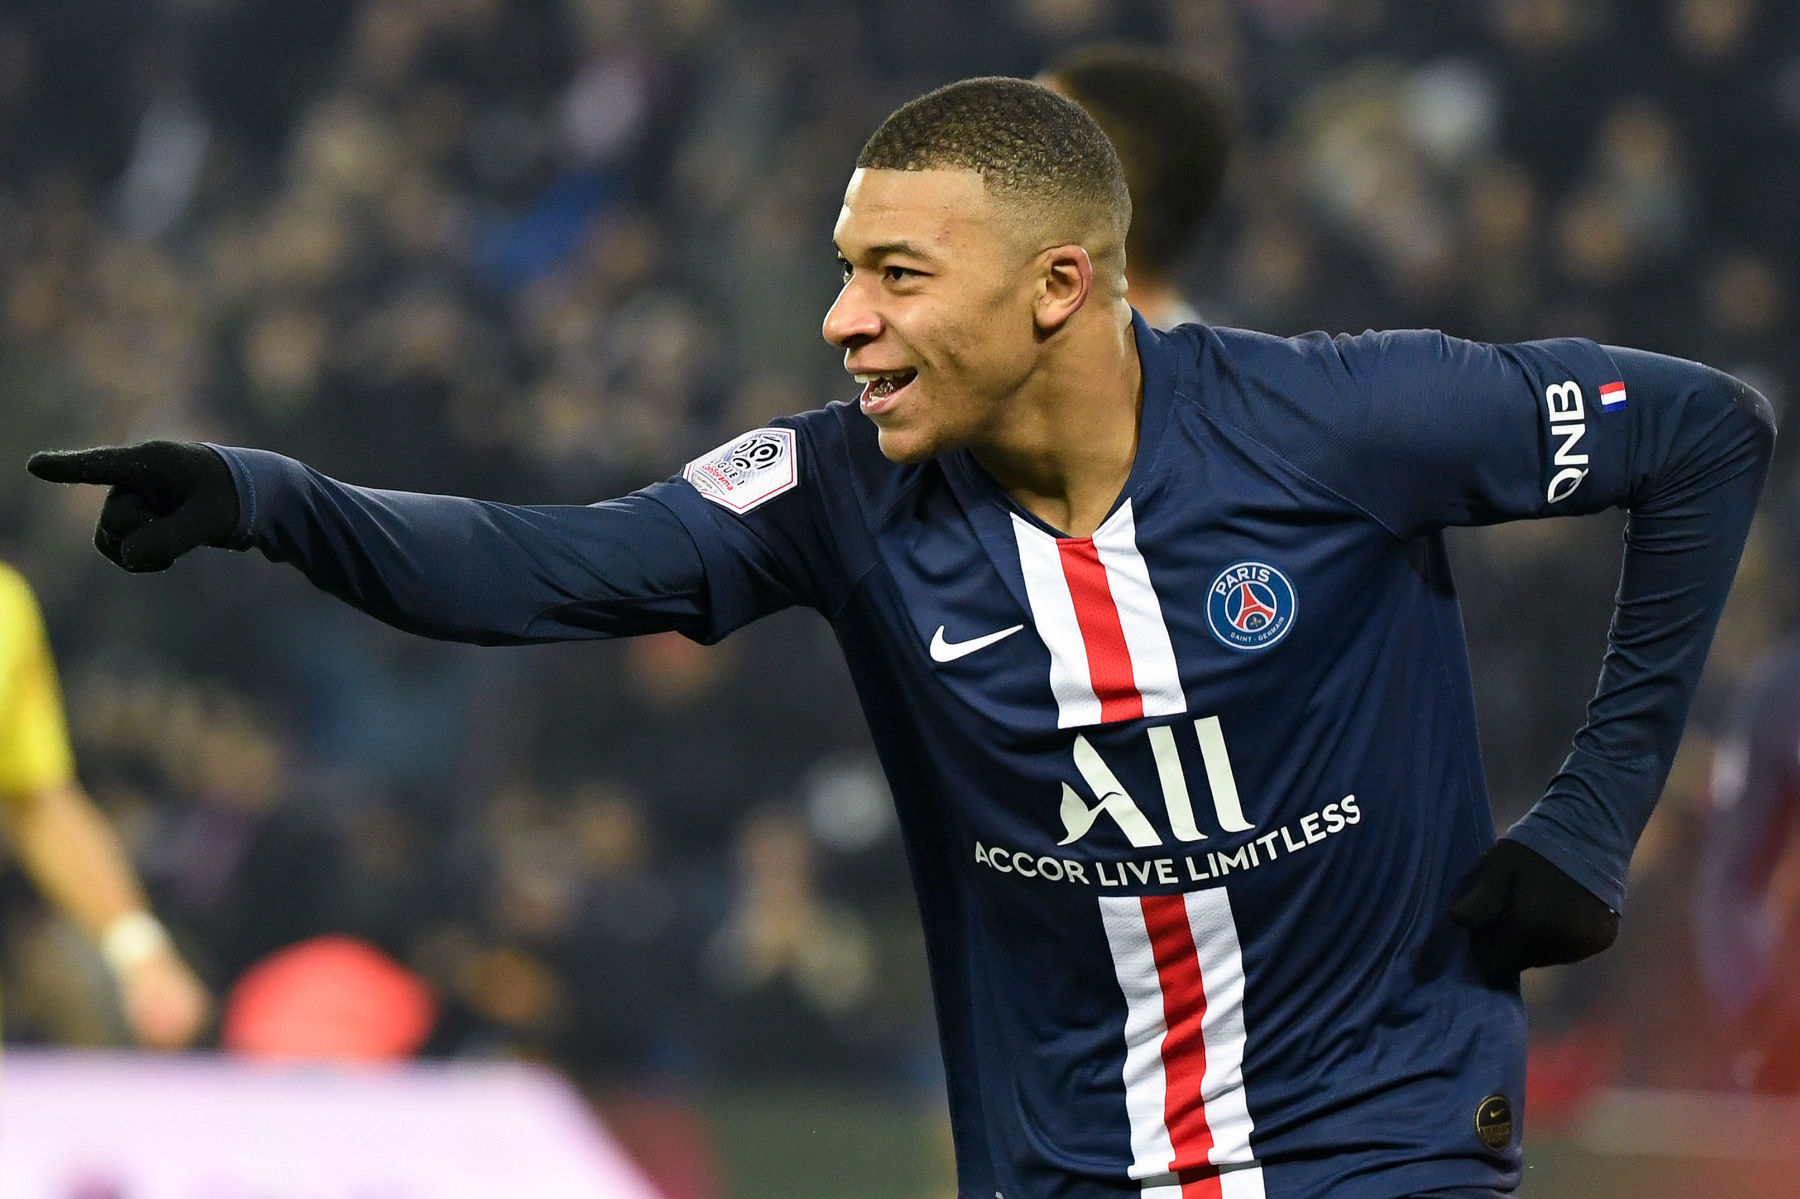 Report: Real Madrid Prepared to Offer €200M + Player for Mbappé ...